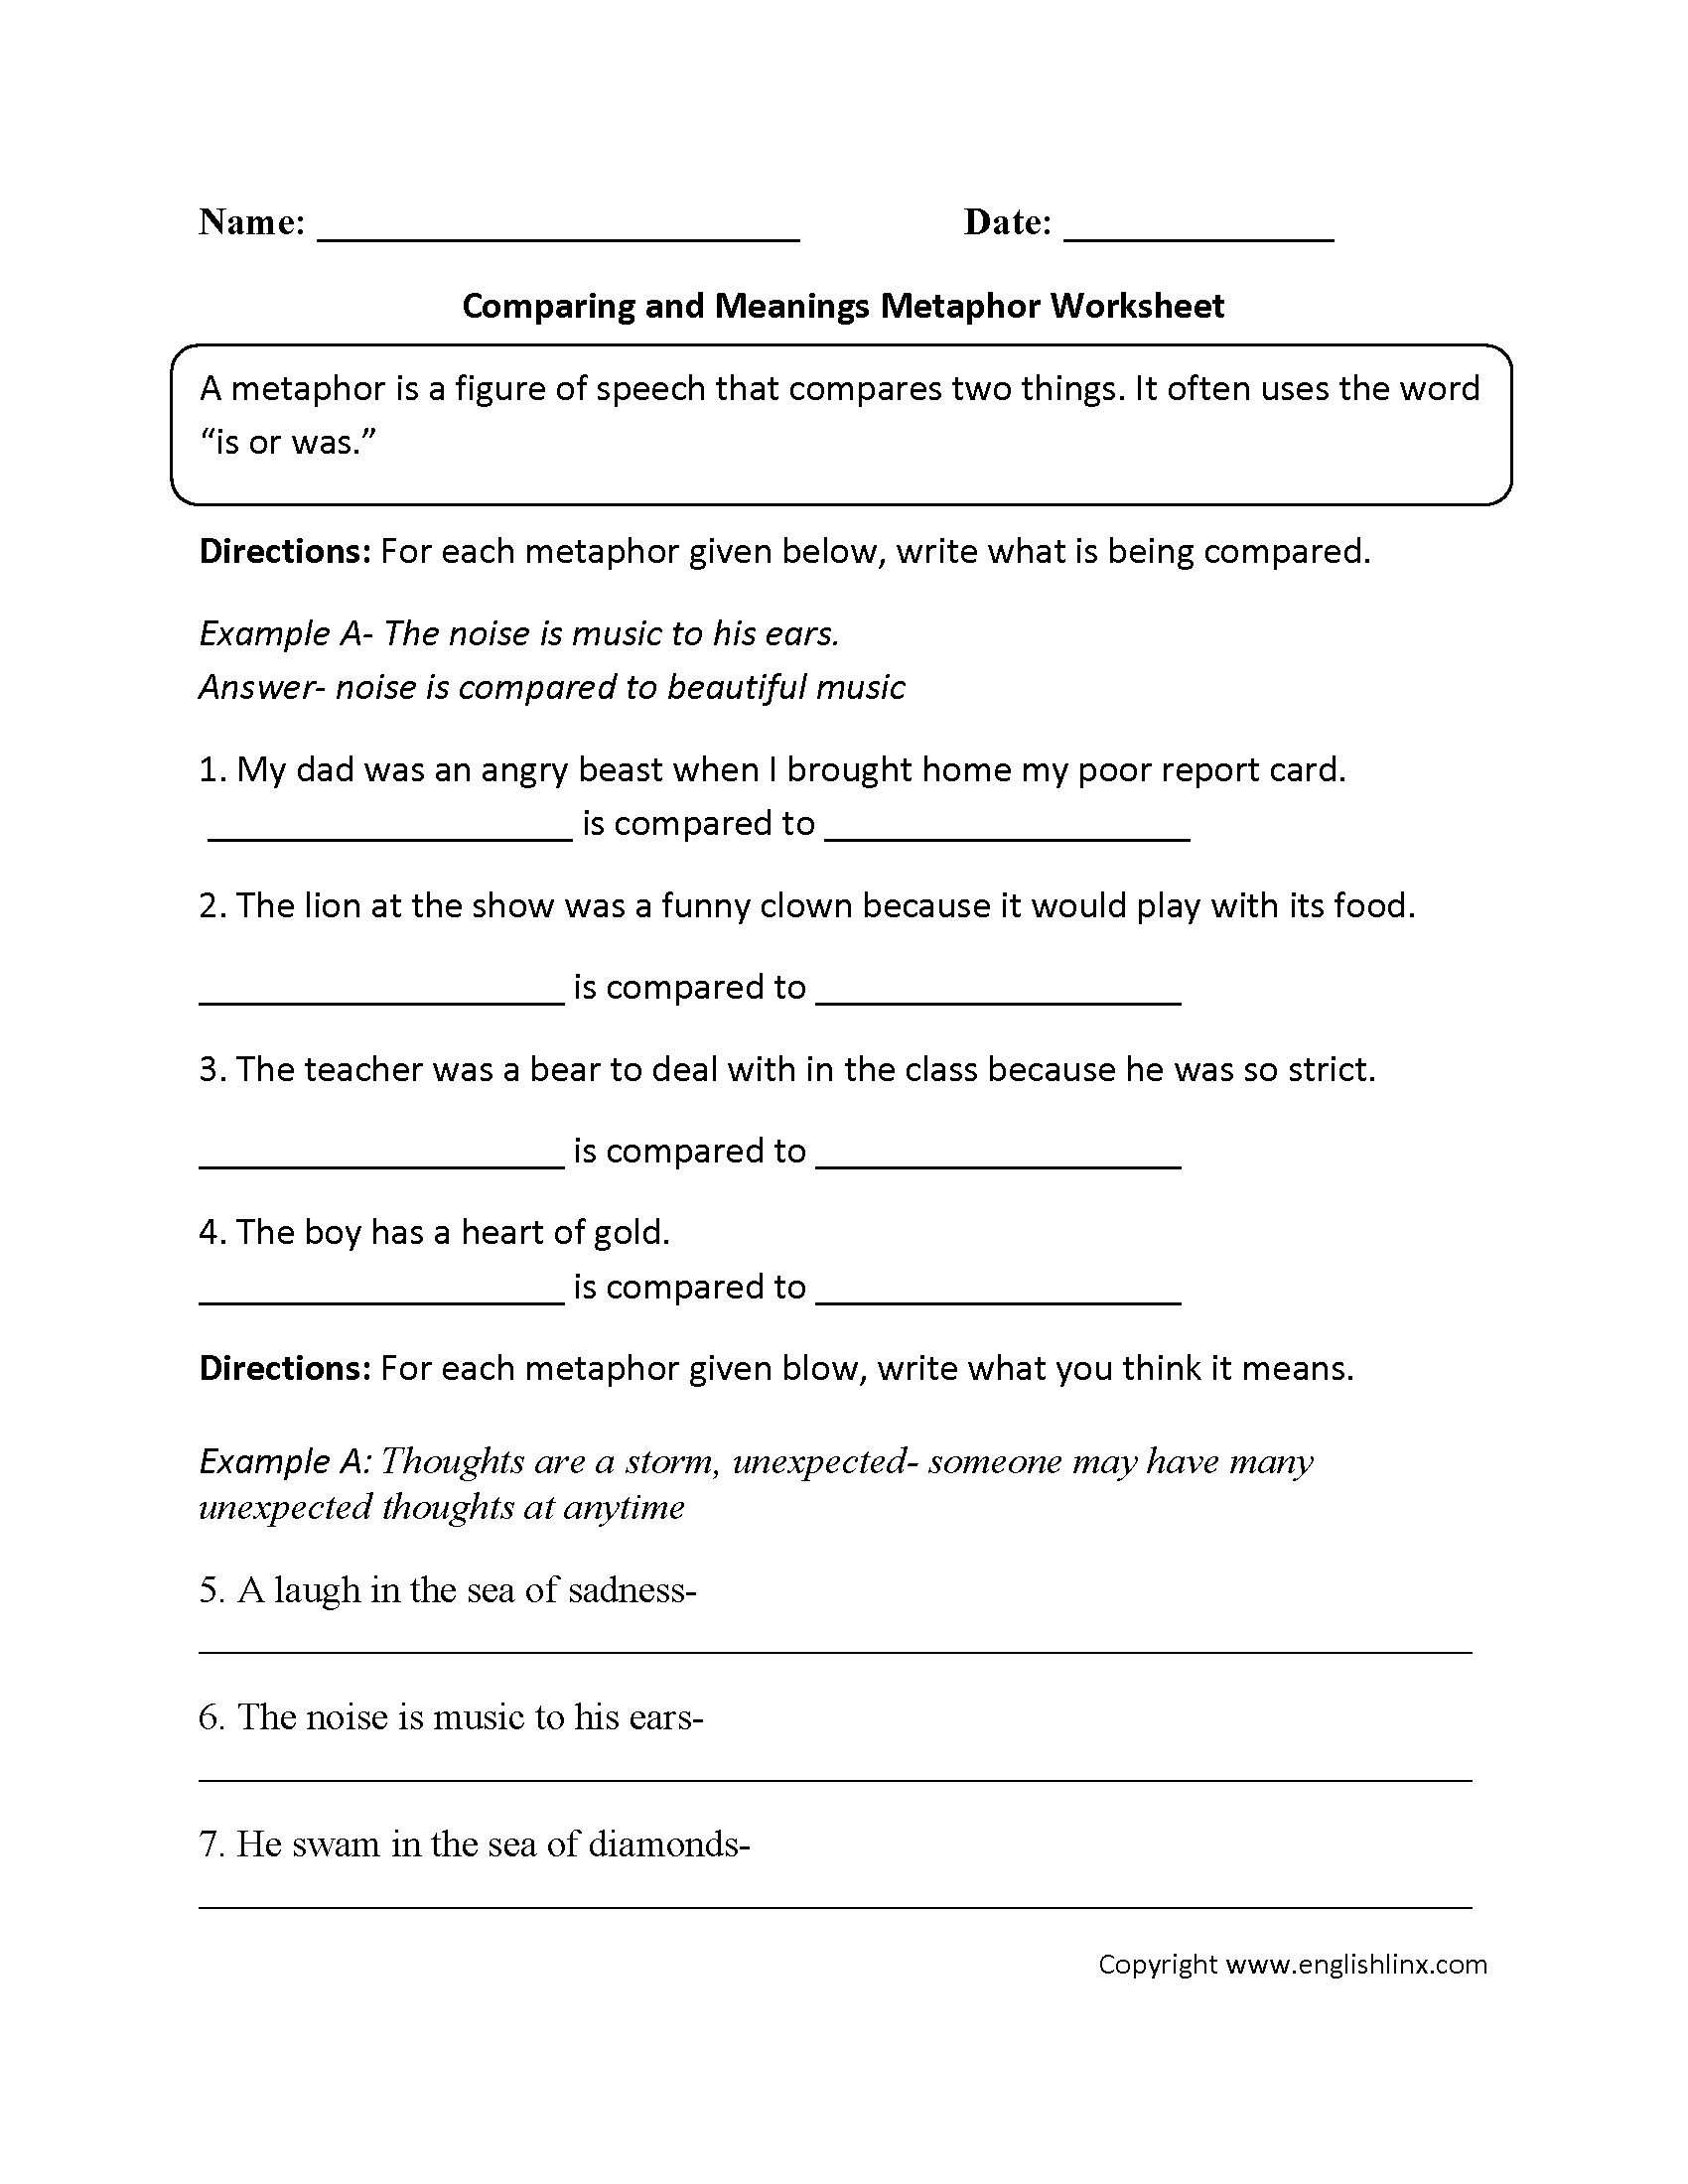 Grammar 3rd Grade Worksheets Luxury Metaphor Worksheet 3rd Grade